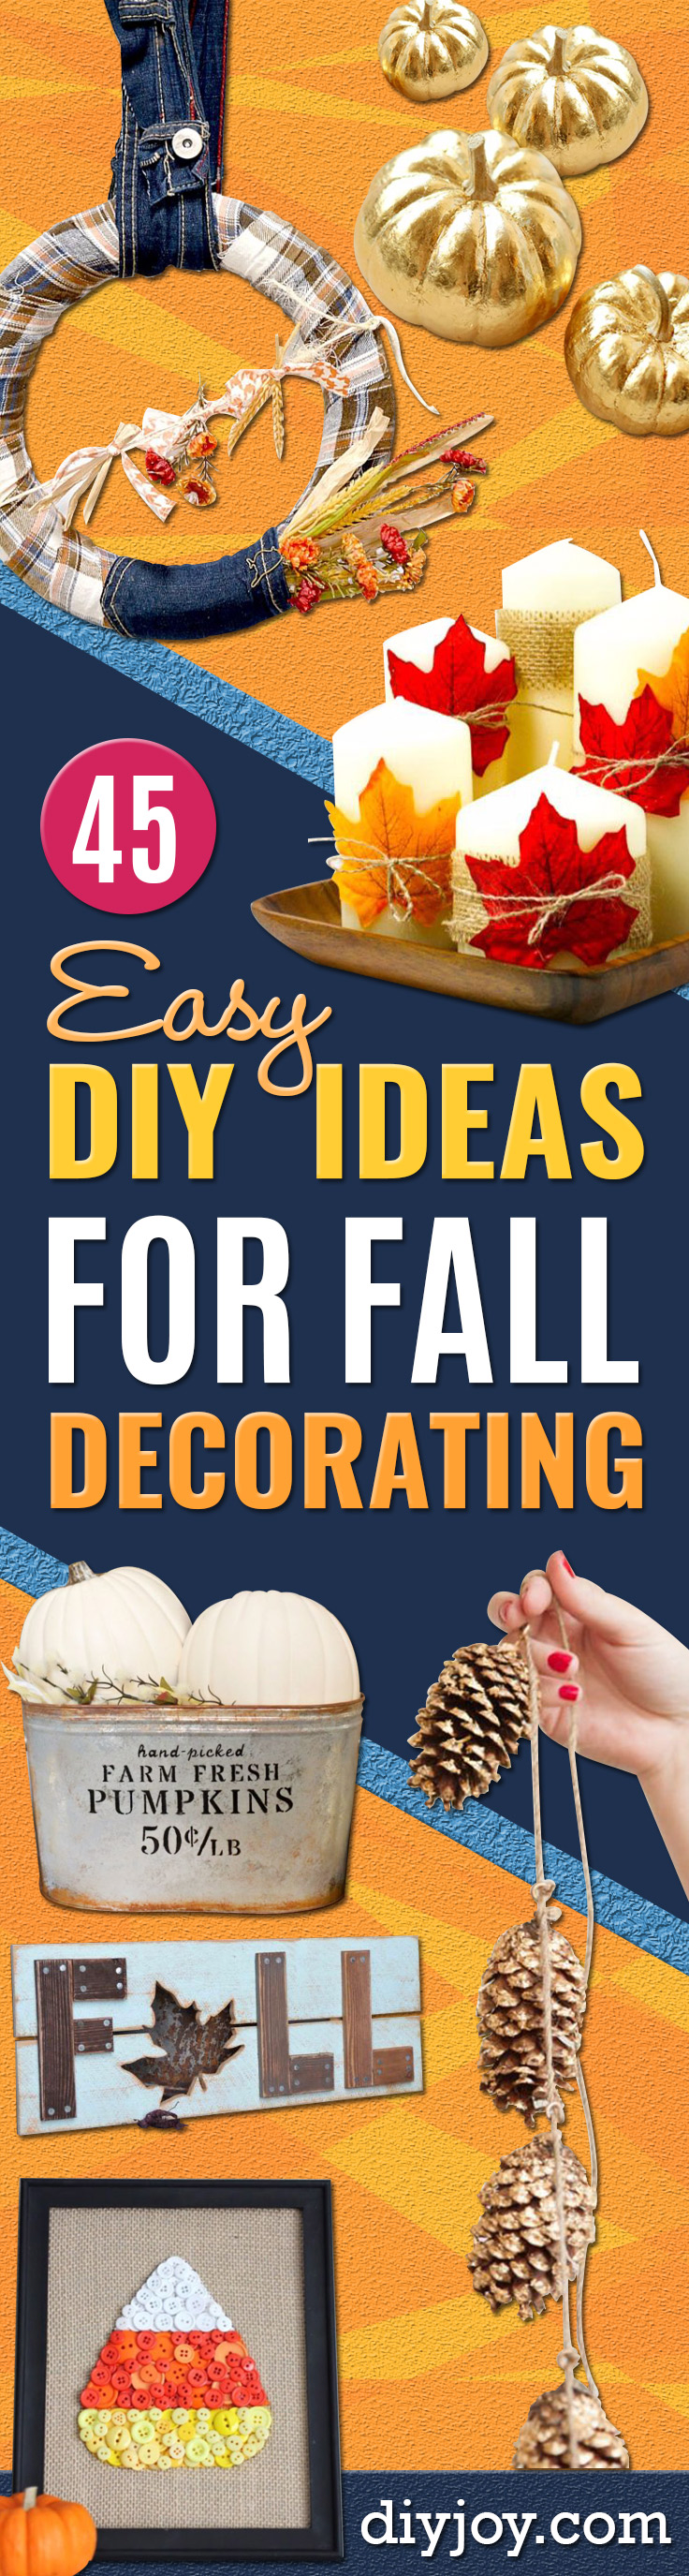 DIY Fall Decorating Ideas - Best Crafts for Fall Decorating - DIY Home Decor, Fall Mason Jar Crafts Ideas, Dollar Store Crafts, Rustic Pumpkin Ideas, Wreaths, Candles and Wall Art, Centerpieces, Craft Projects with Leaves, Flowers and Burlap Table Runner, Painted Art, Candles